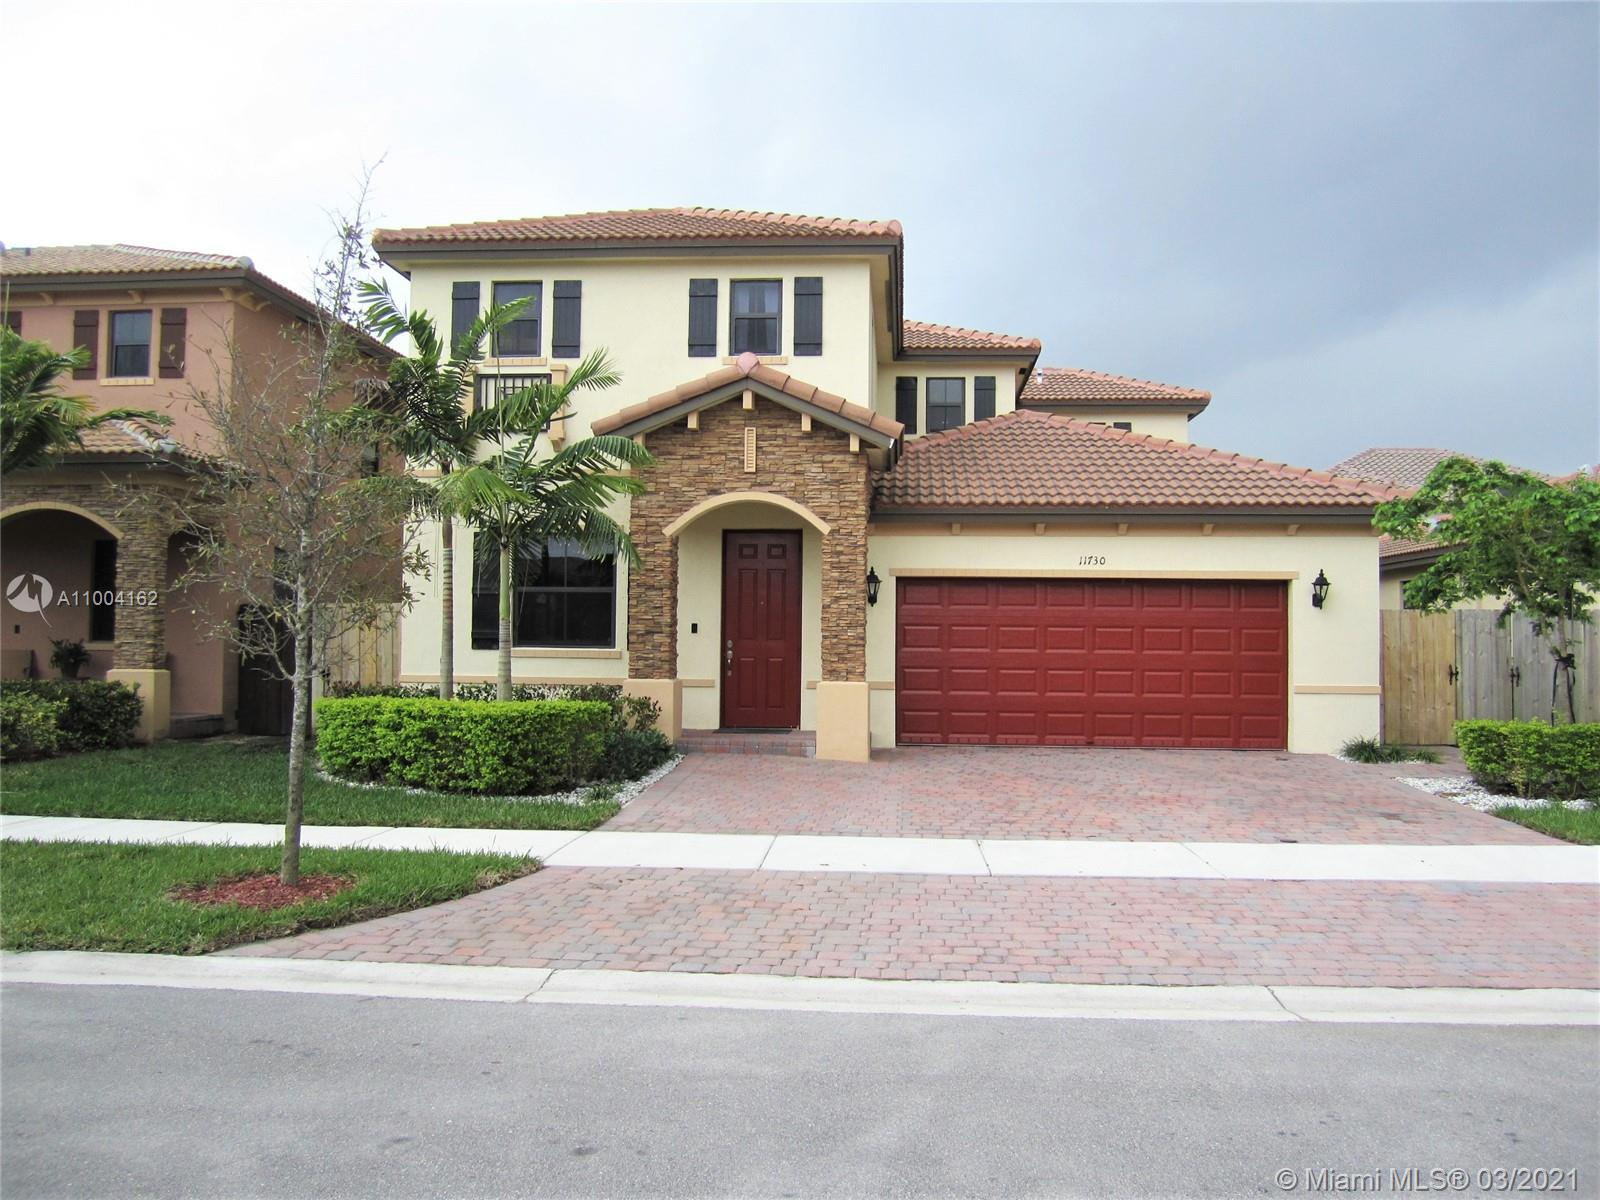 11730 SW 242nd Ter Property Photo - Homestead, FL real estate listing